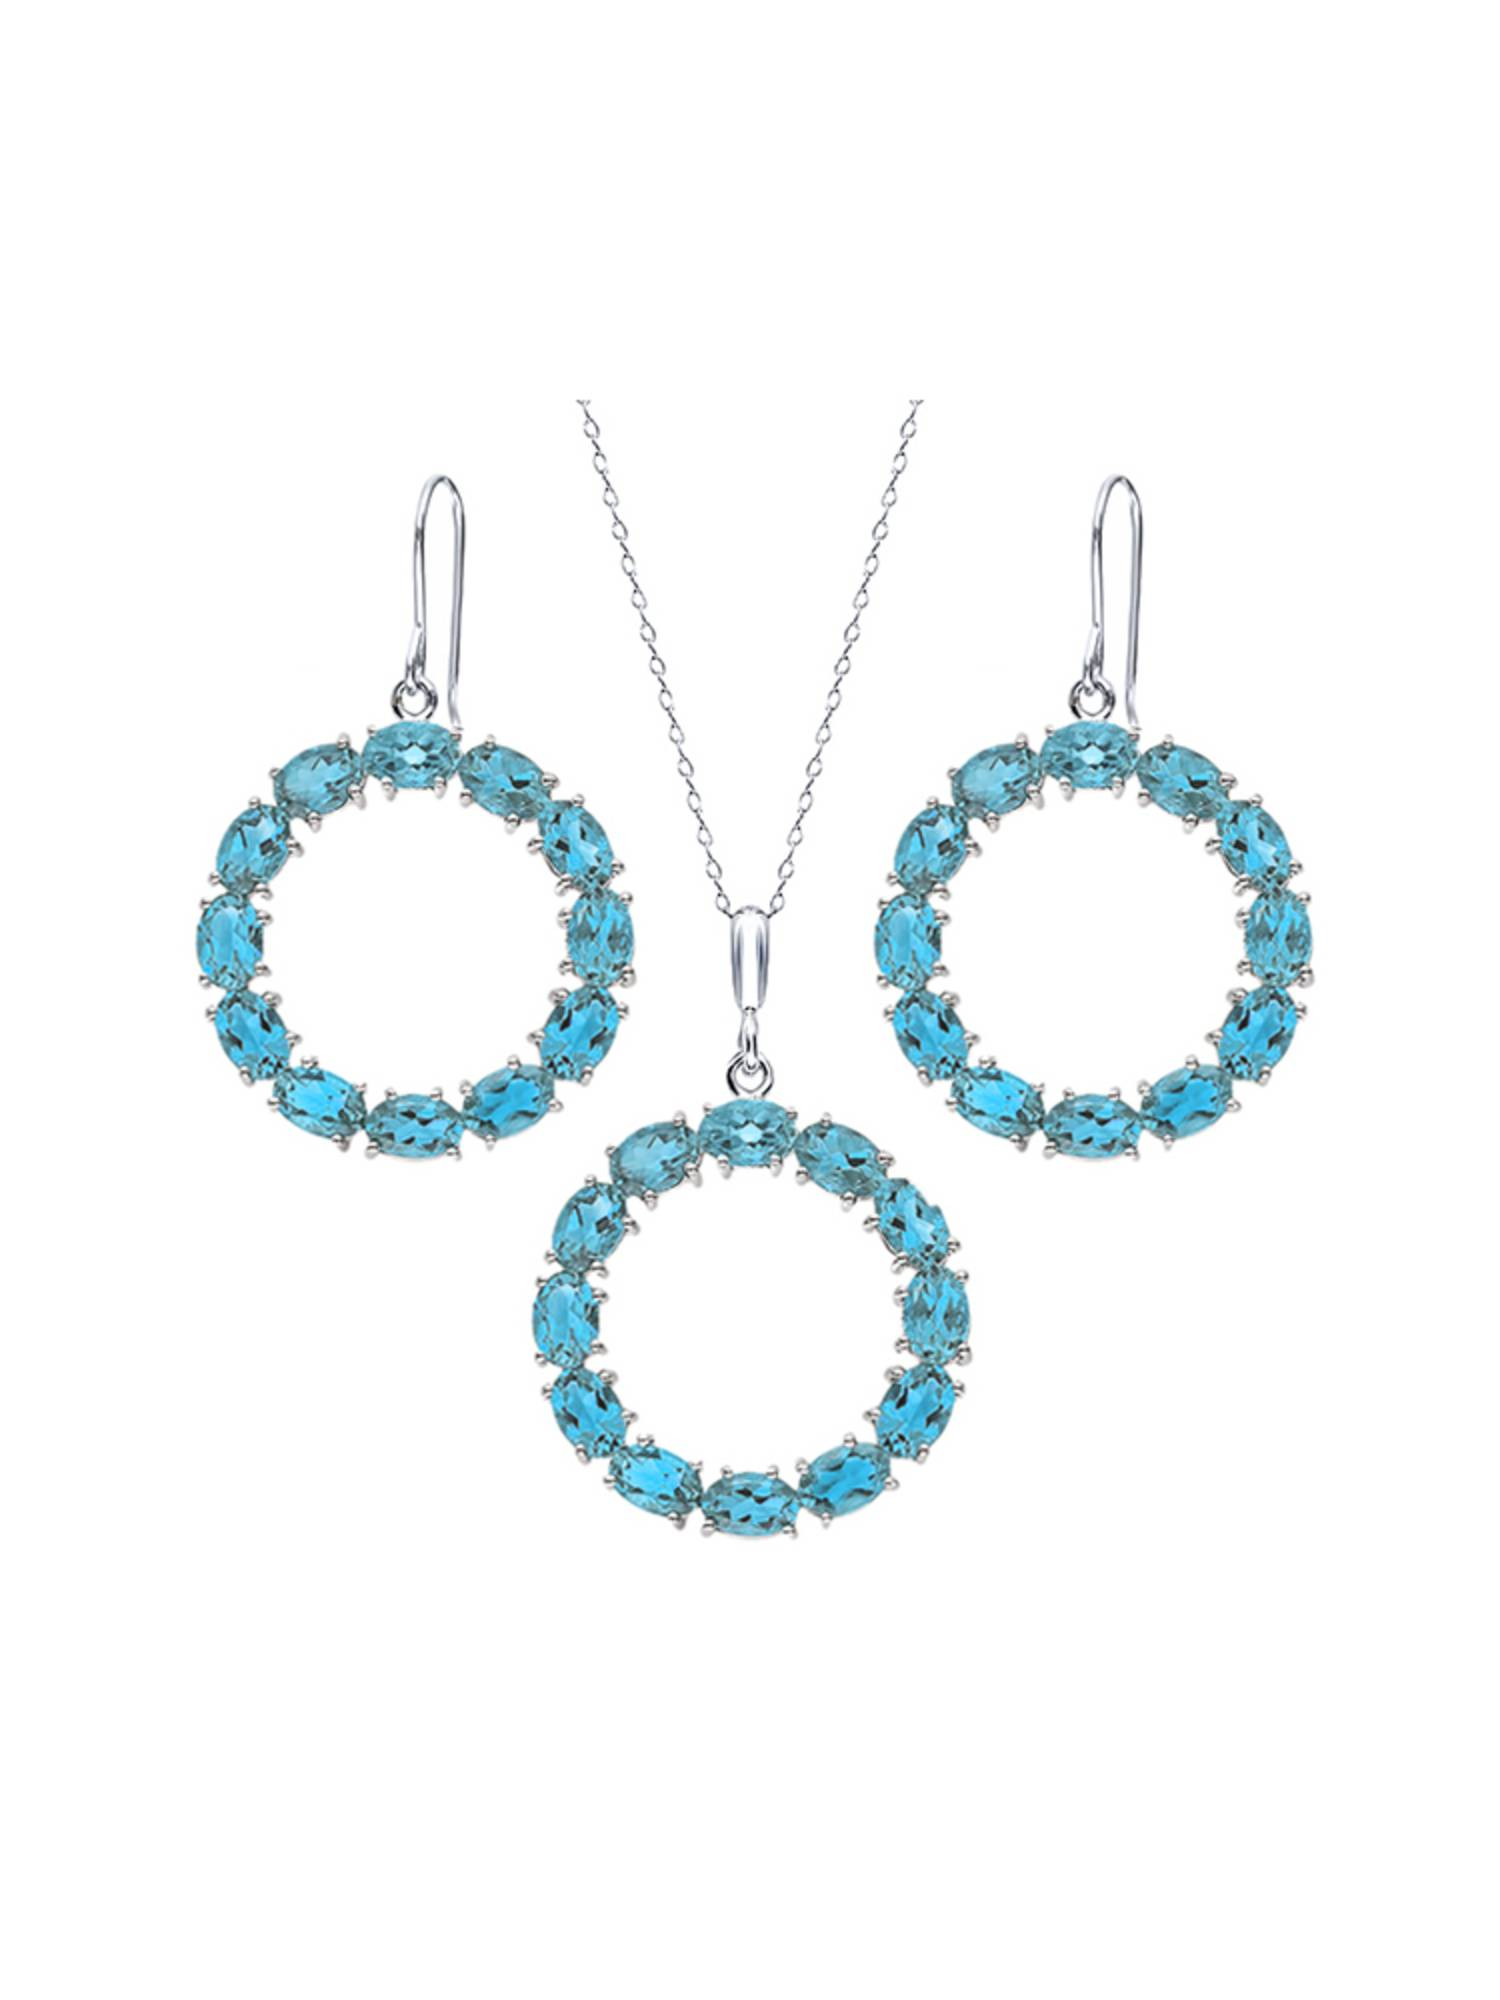 21 Ctw Oval Swiss Blue Topaz Sterling Silver Circle Pendant Earrings Set by